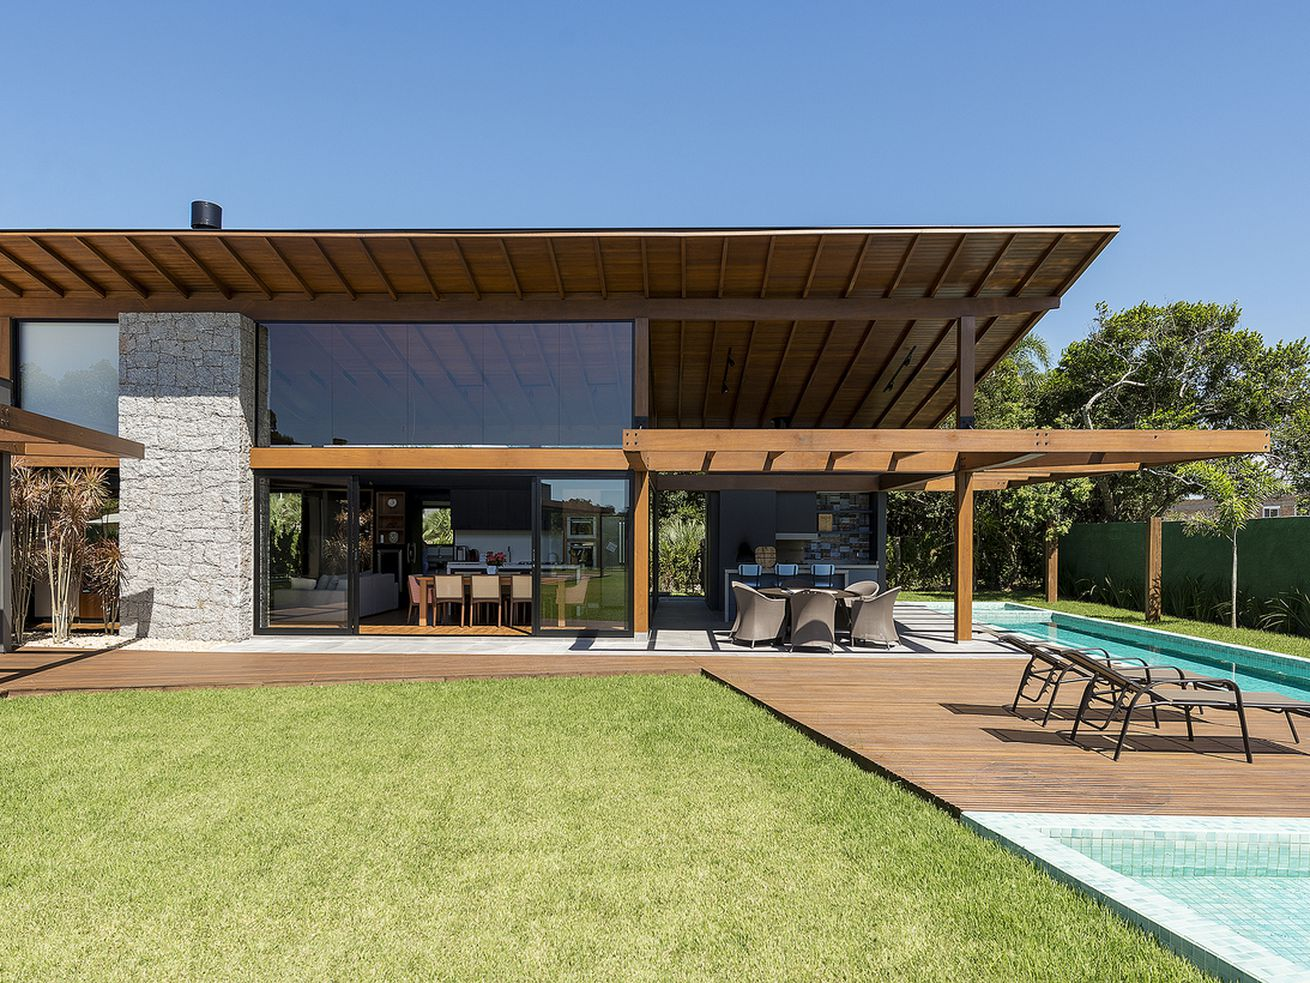 Indoor outdoor modern house hits all the right angles